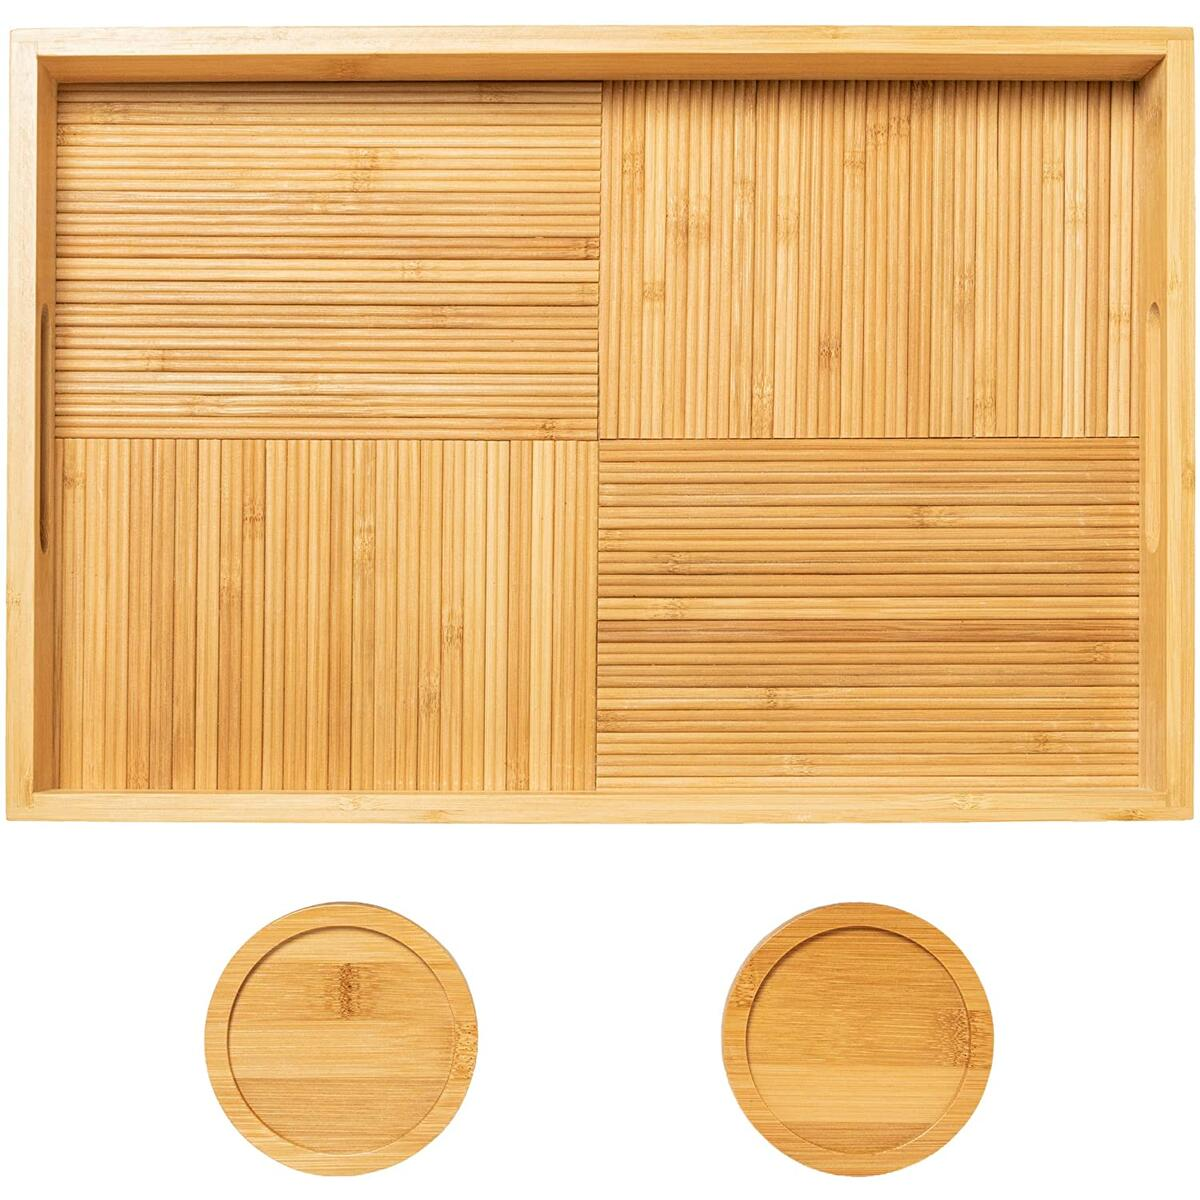 "Primesque Serving Tray with Handles – Premium Bamboo Wooden Trays for Coffee Table with 2 Bamboo Coasters - Decorative Ottoman Tray for Living Room, Kitchen, Bedroom and Vanity (16.5""x11""x2"")"